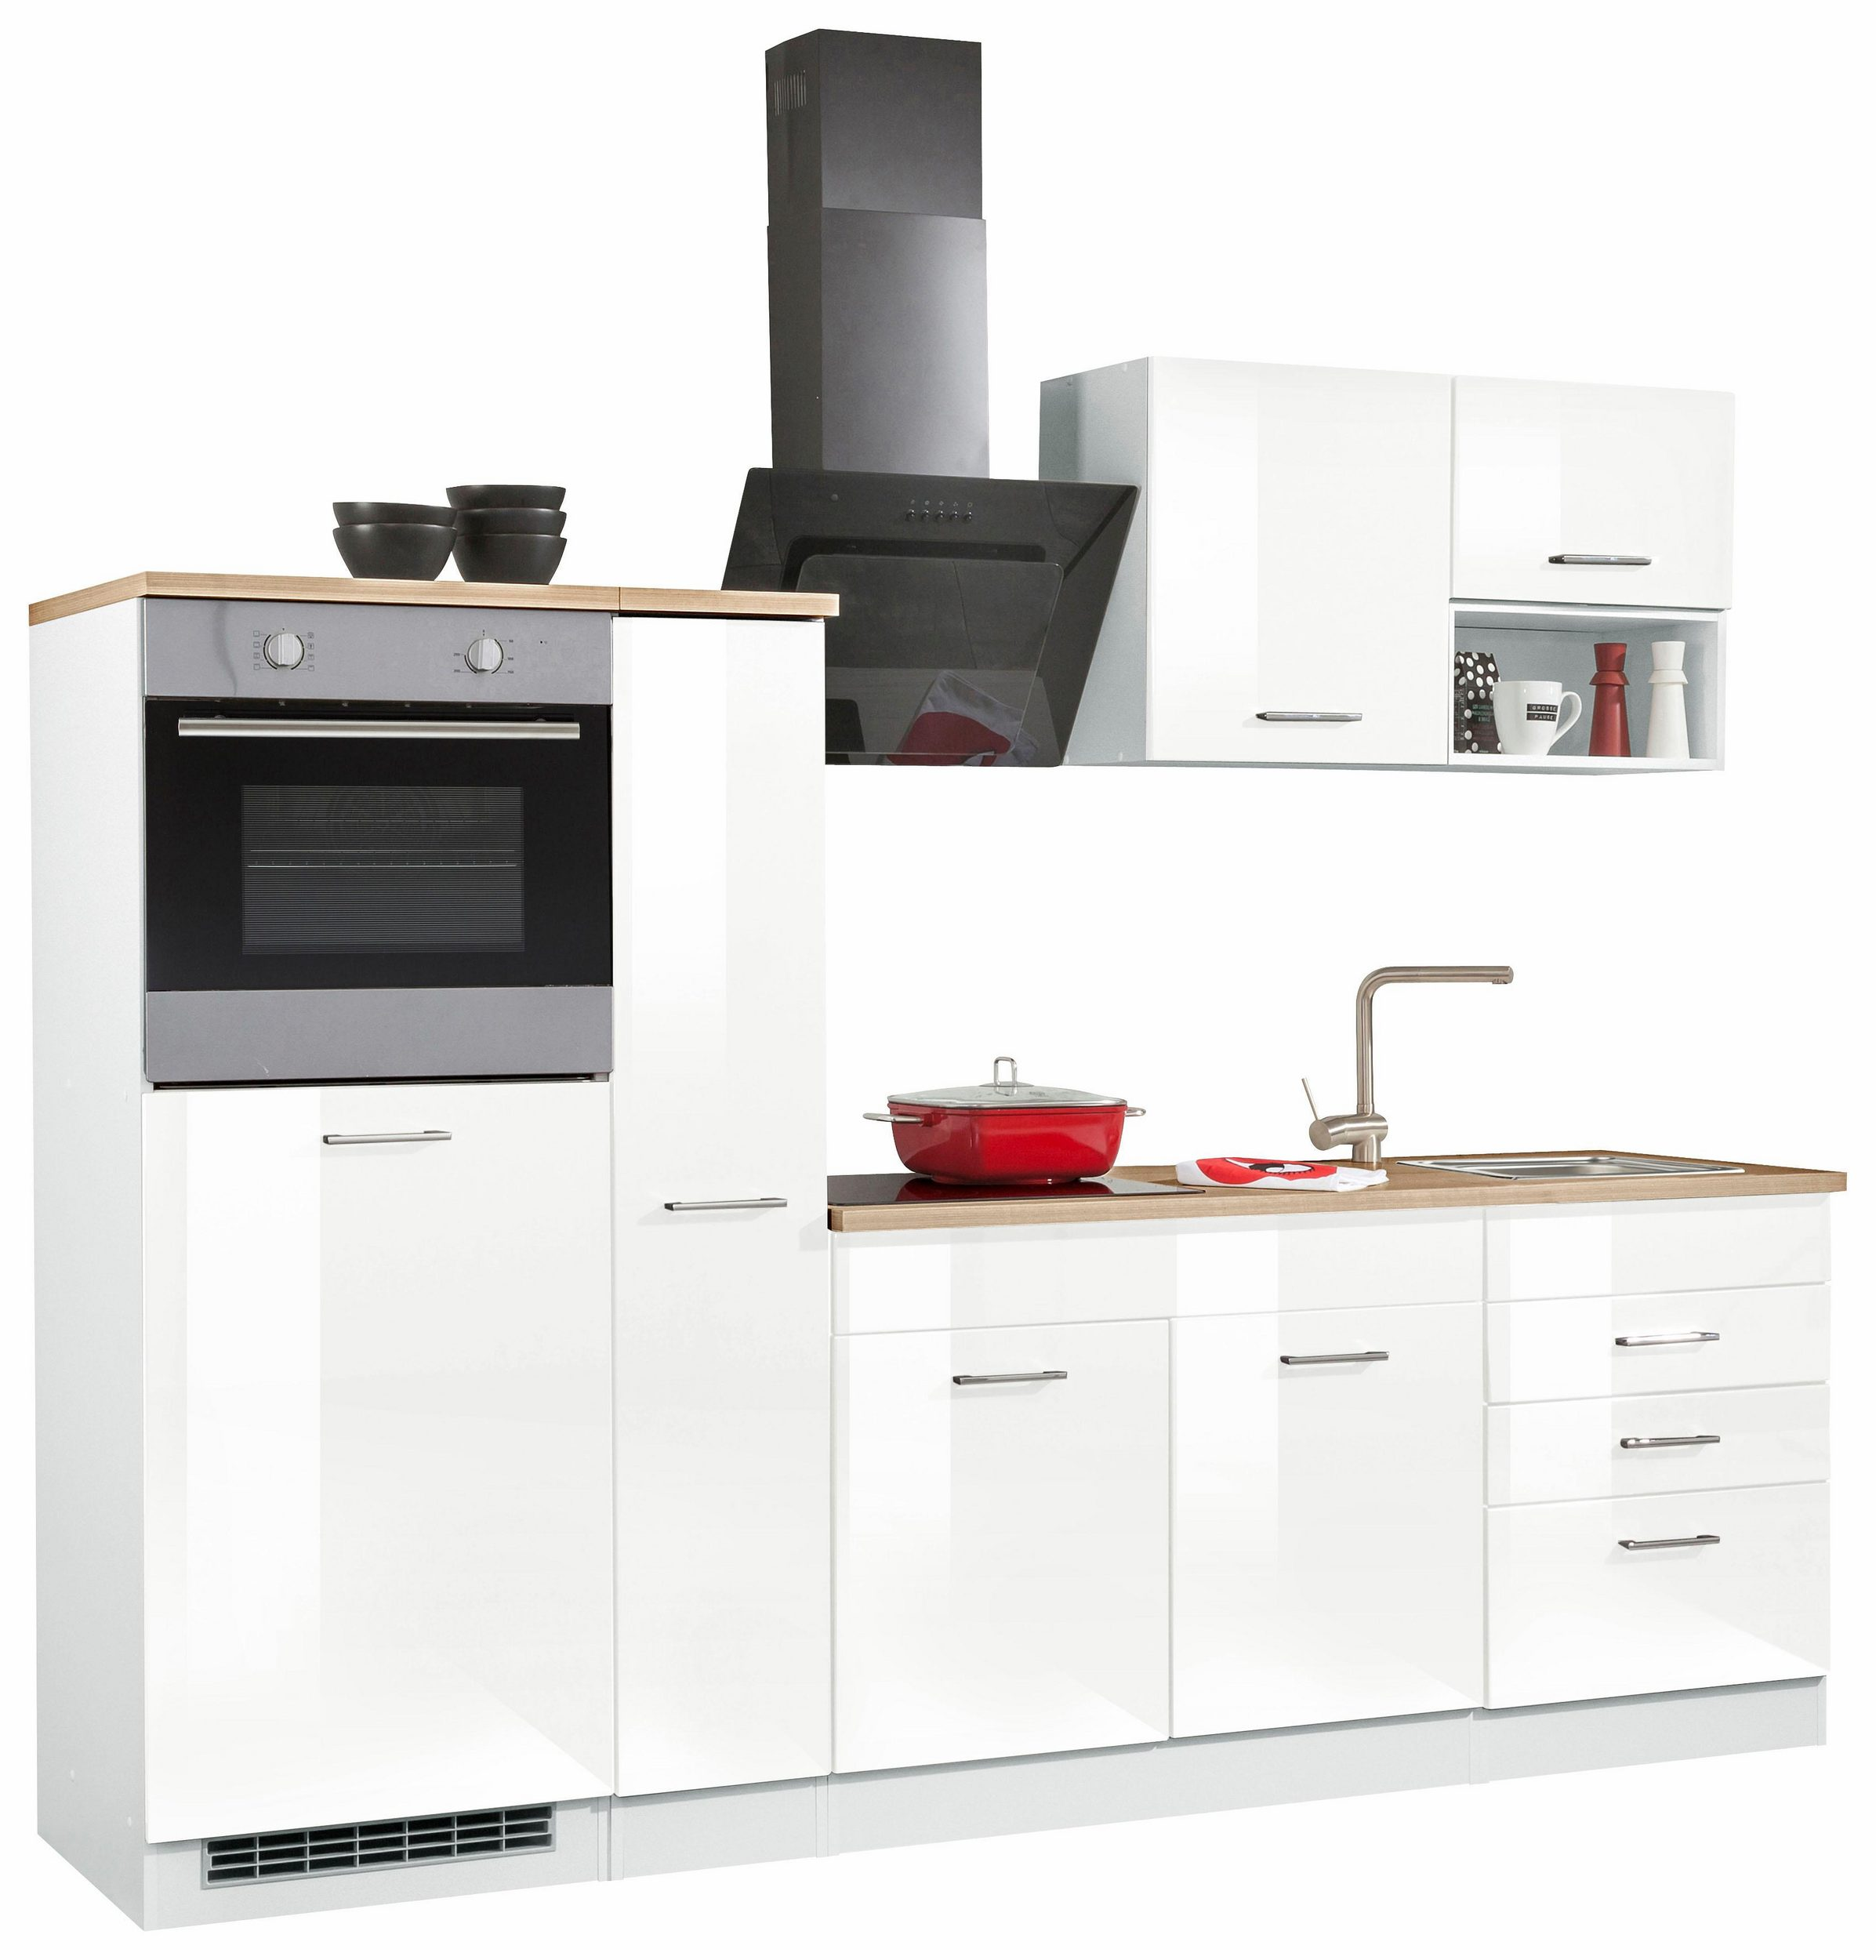 28640485 Vimle Kitchen Cabinets HELD khmer in phnom penh cambodia